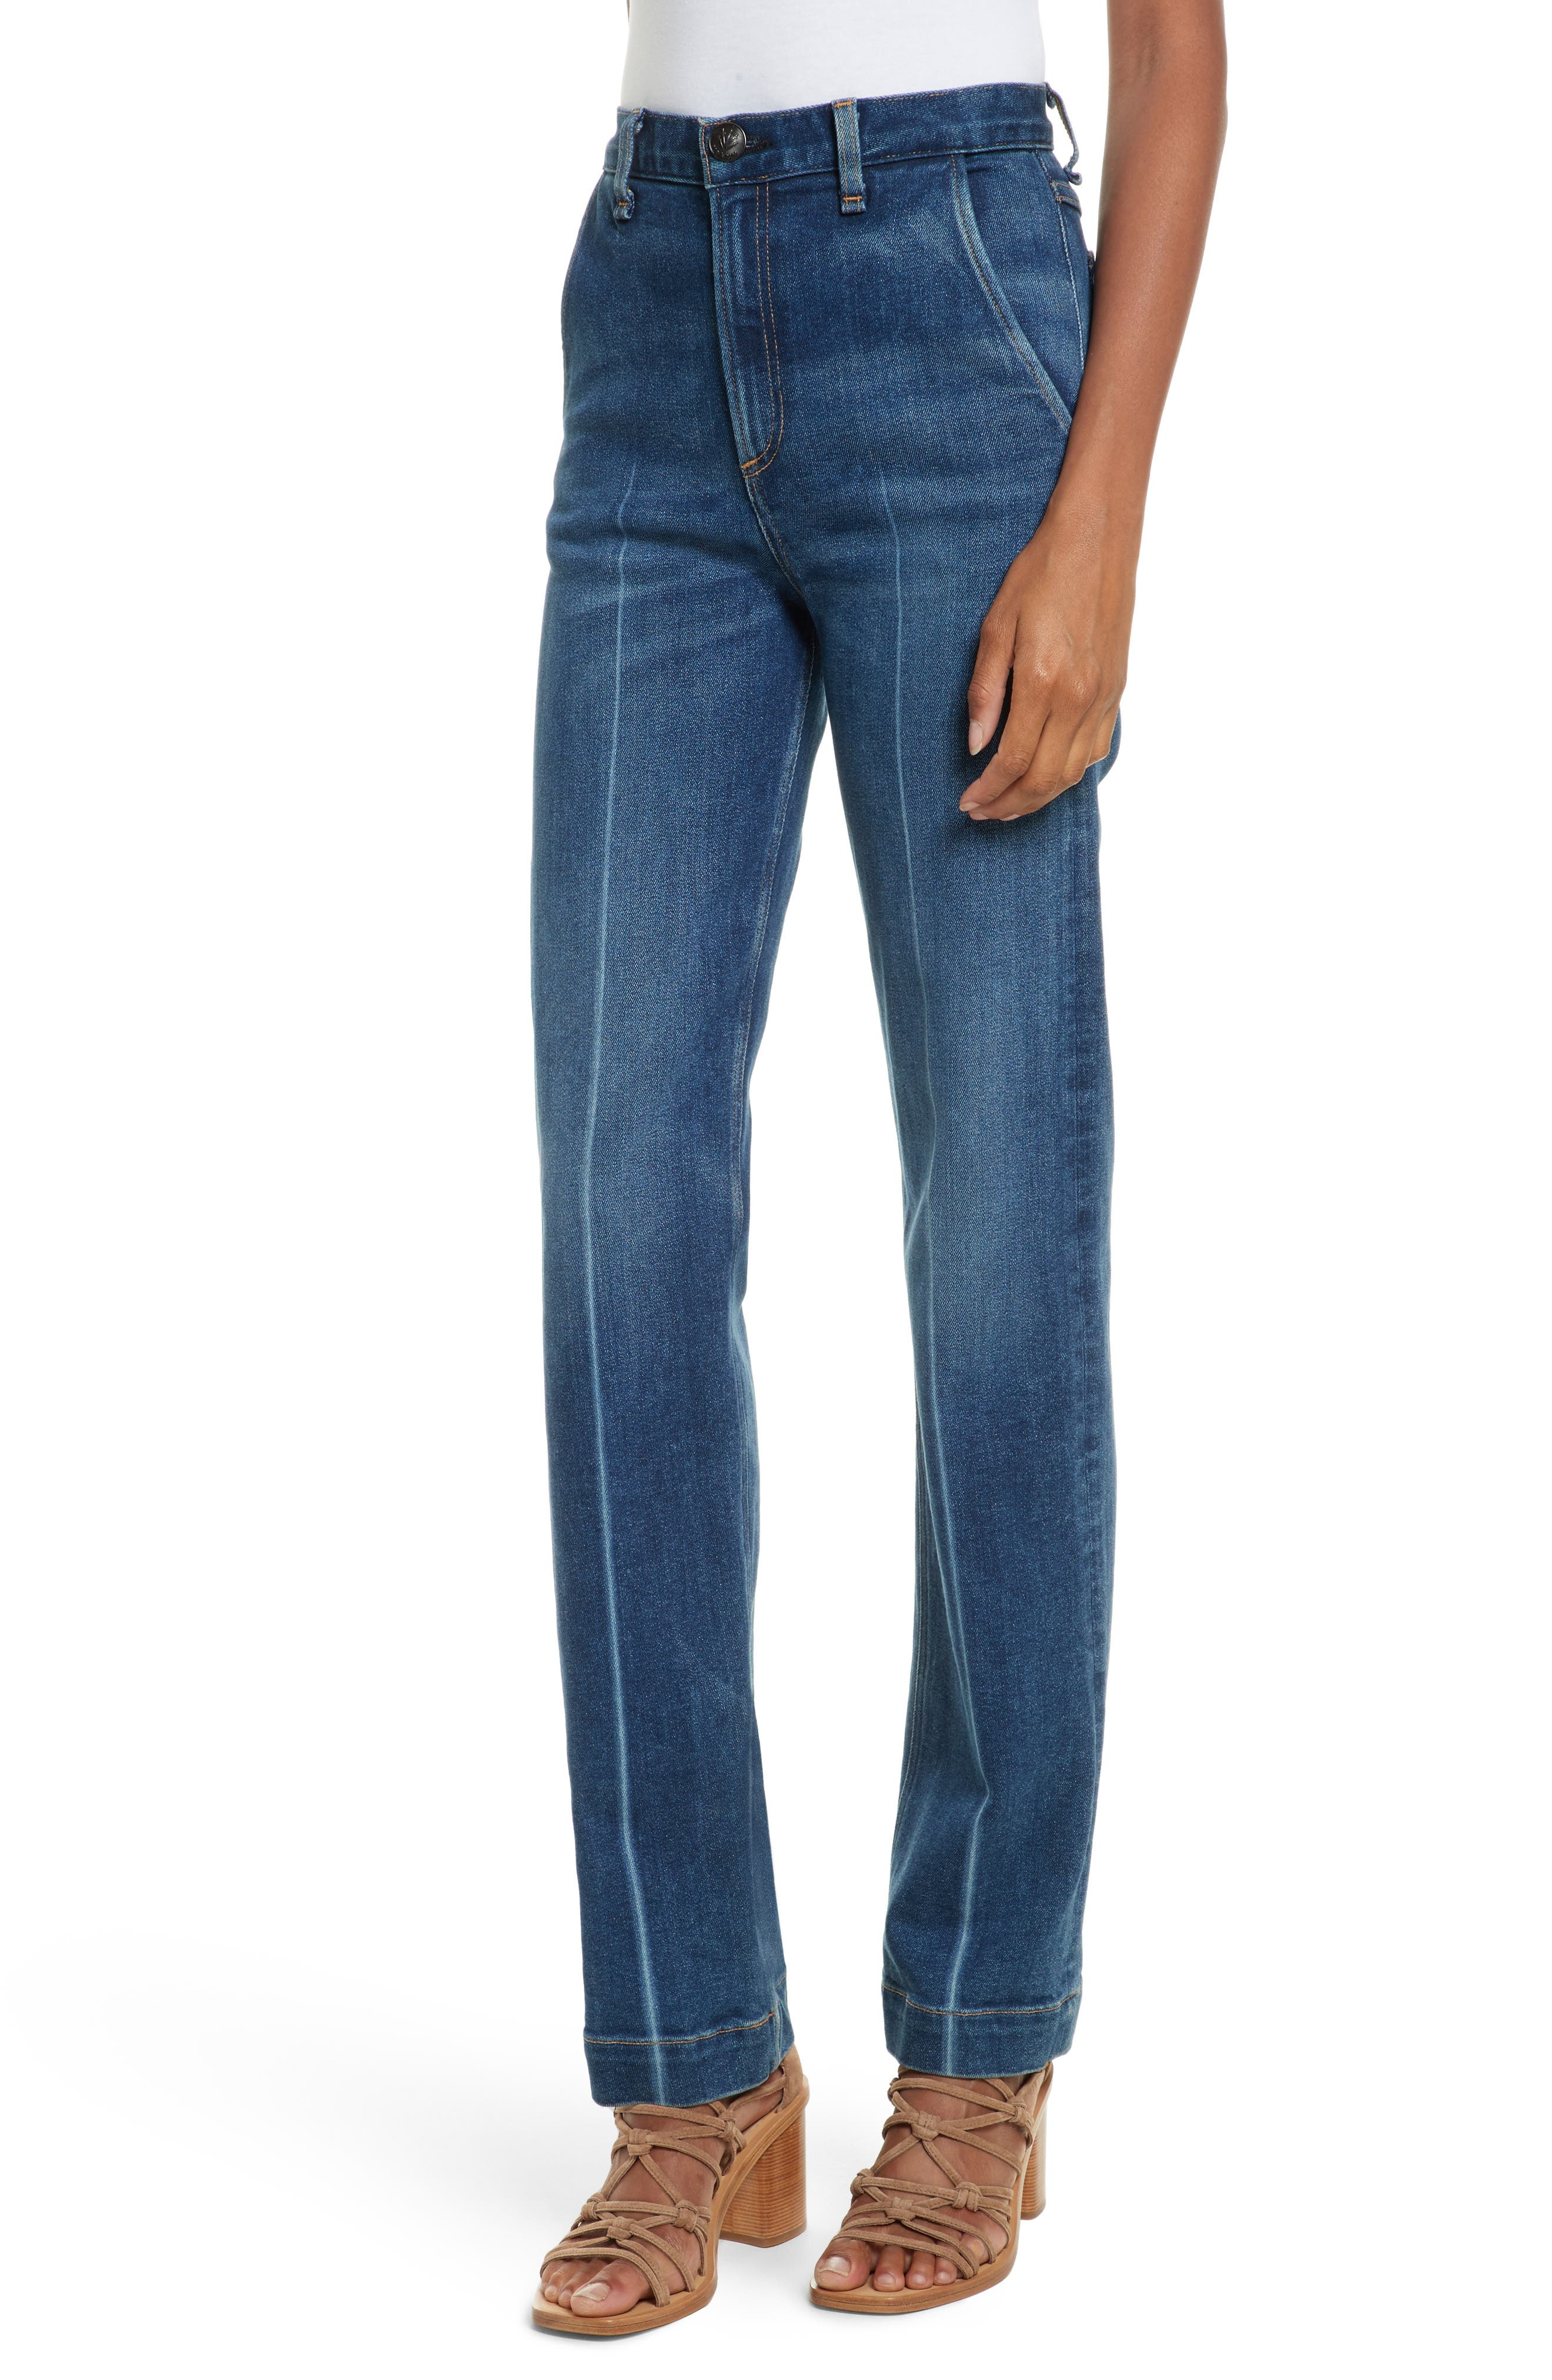 Justine High Waist Trouser Jeans,                         Main,                         color, 462